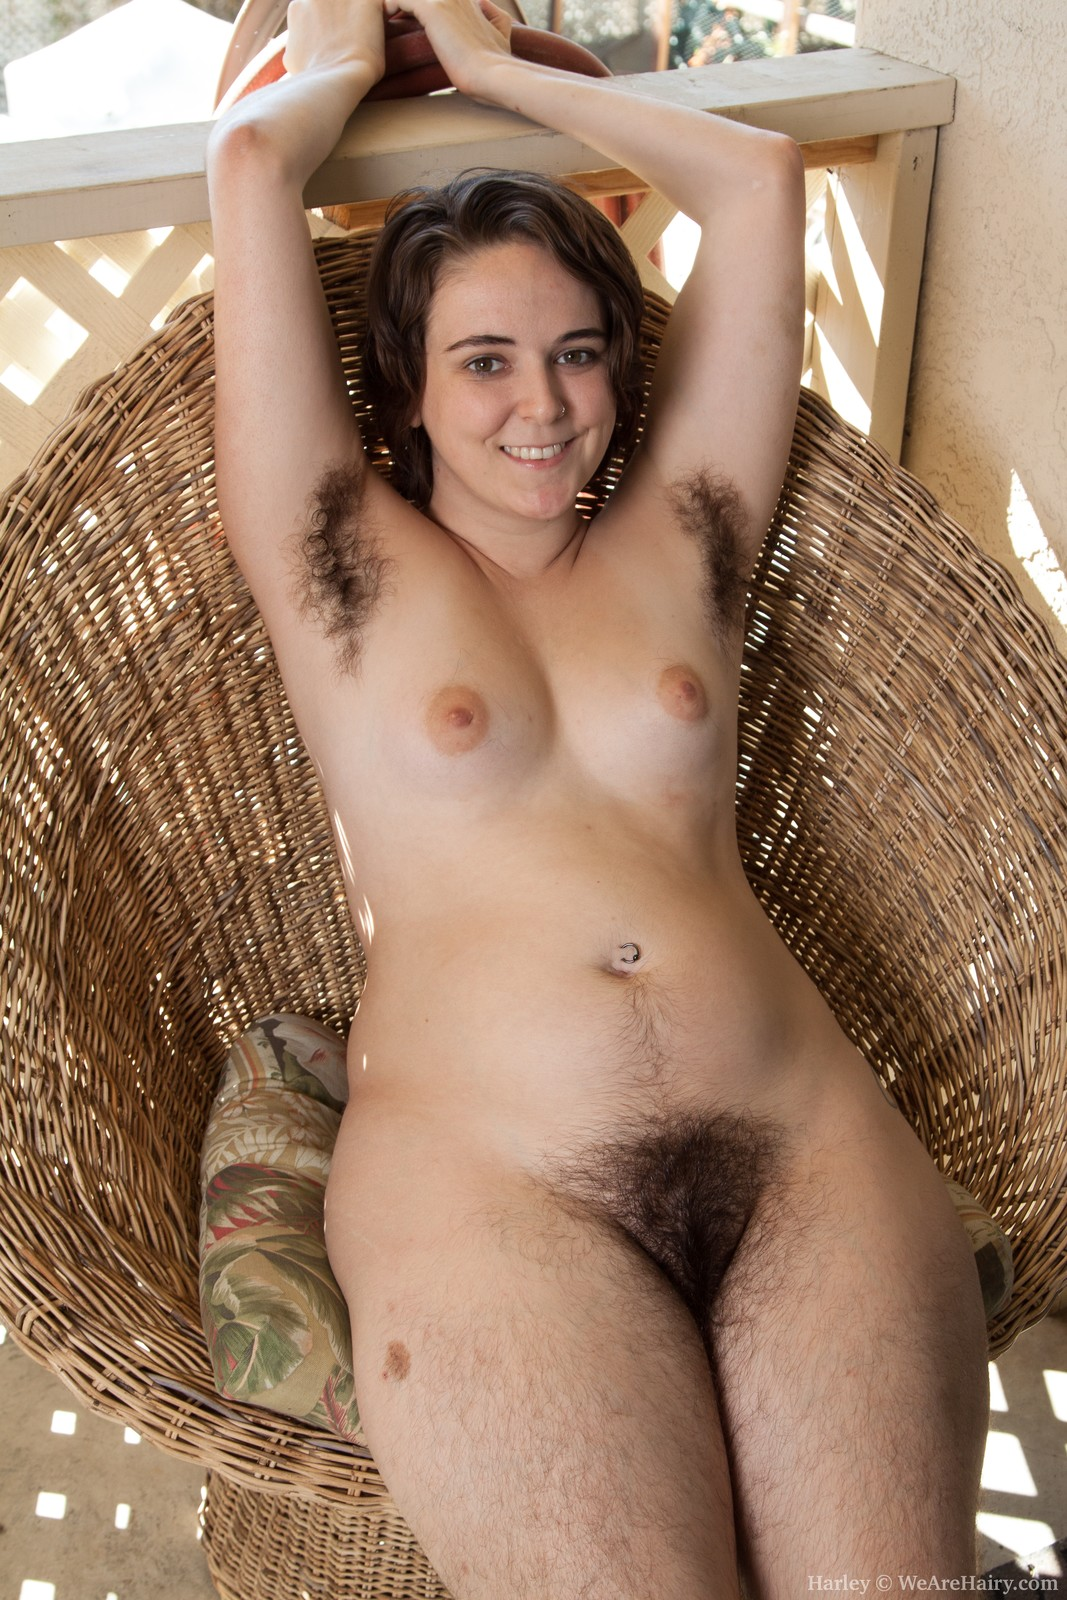 Super hairy girl